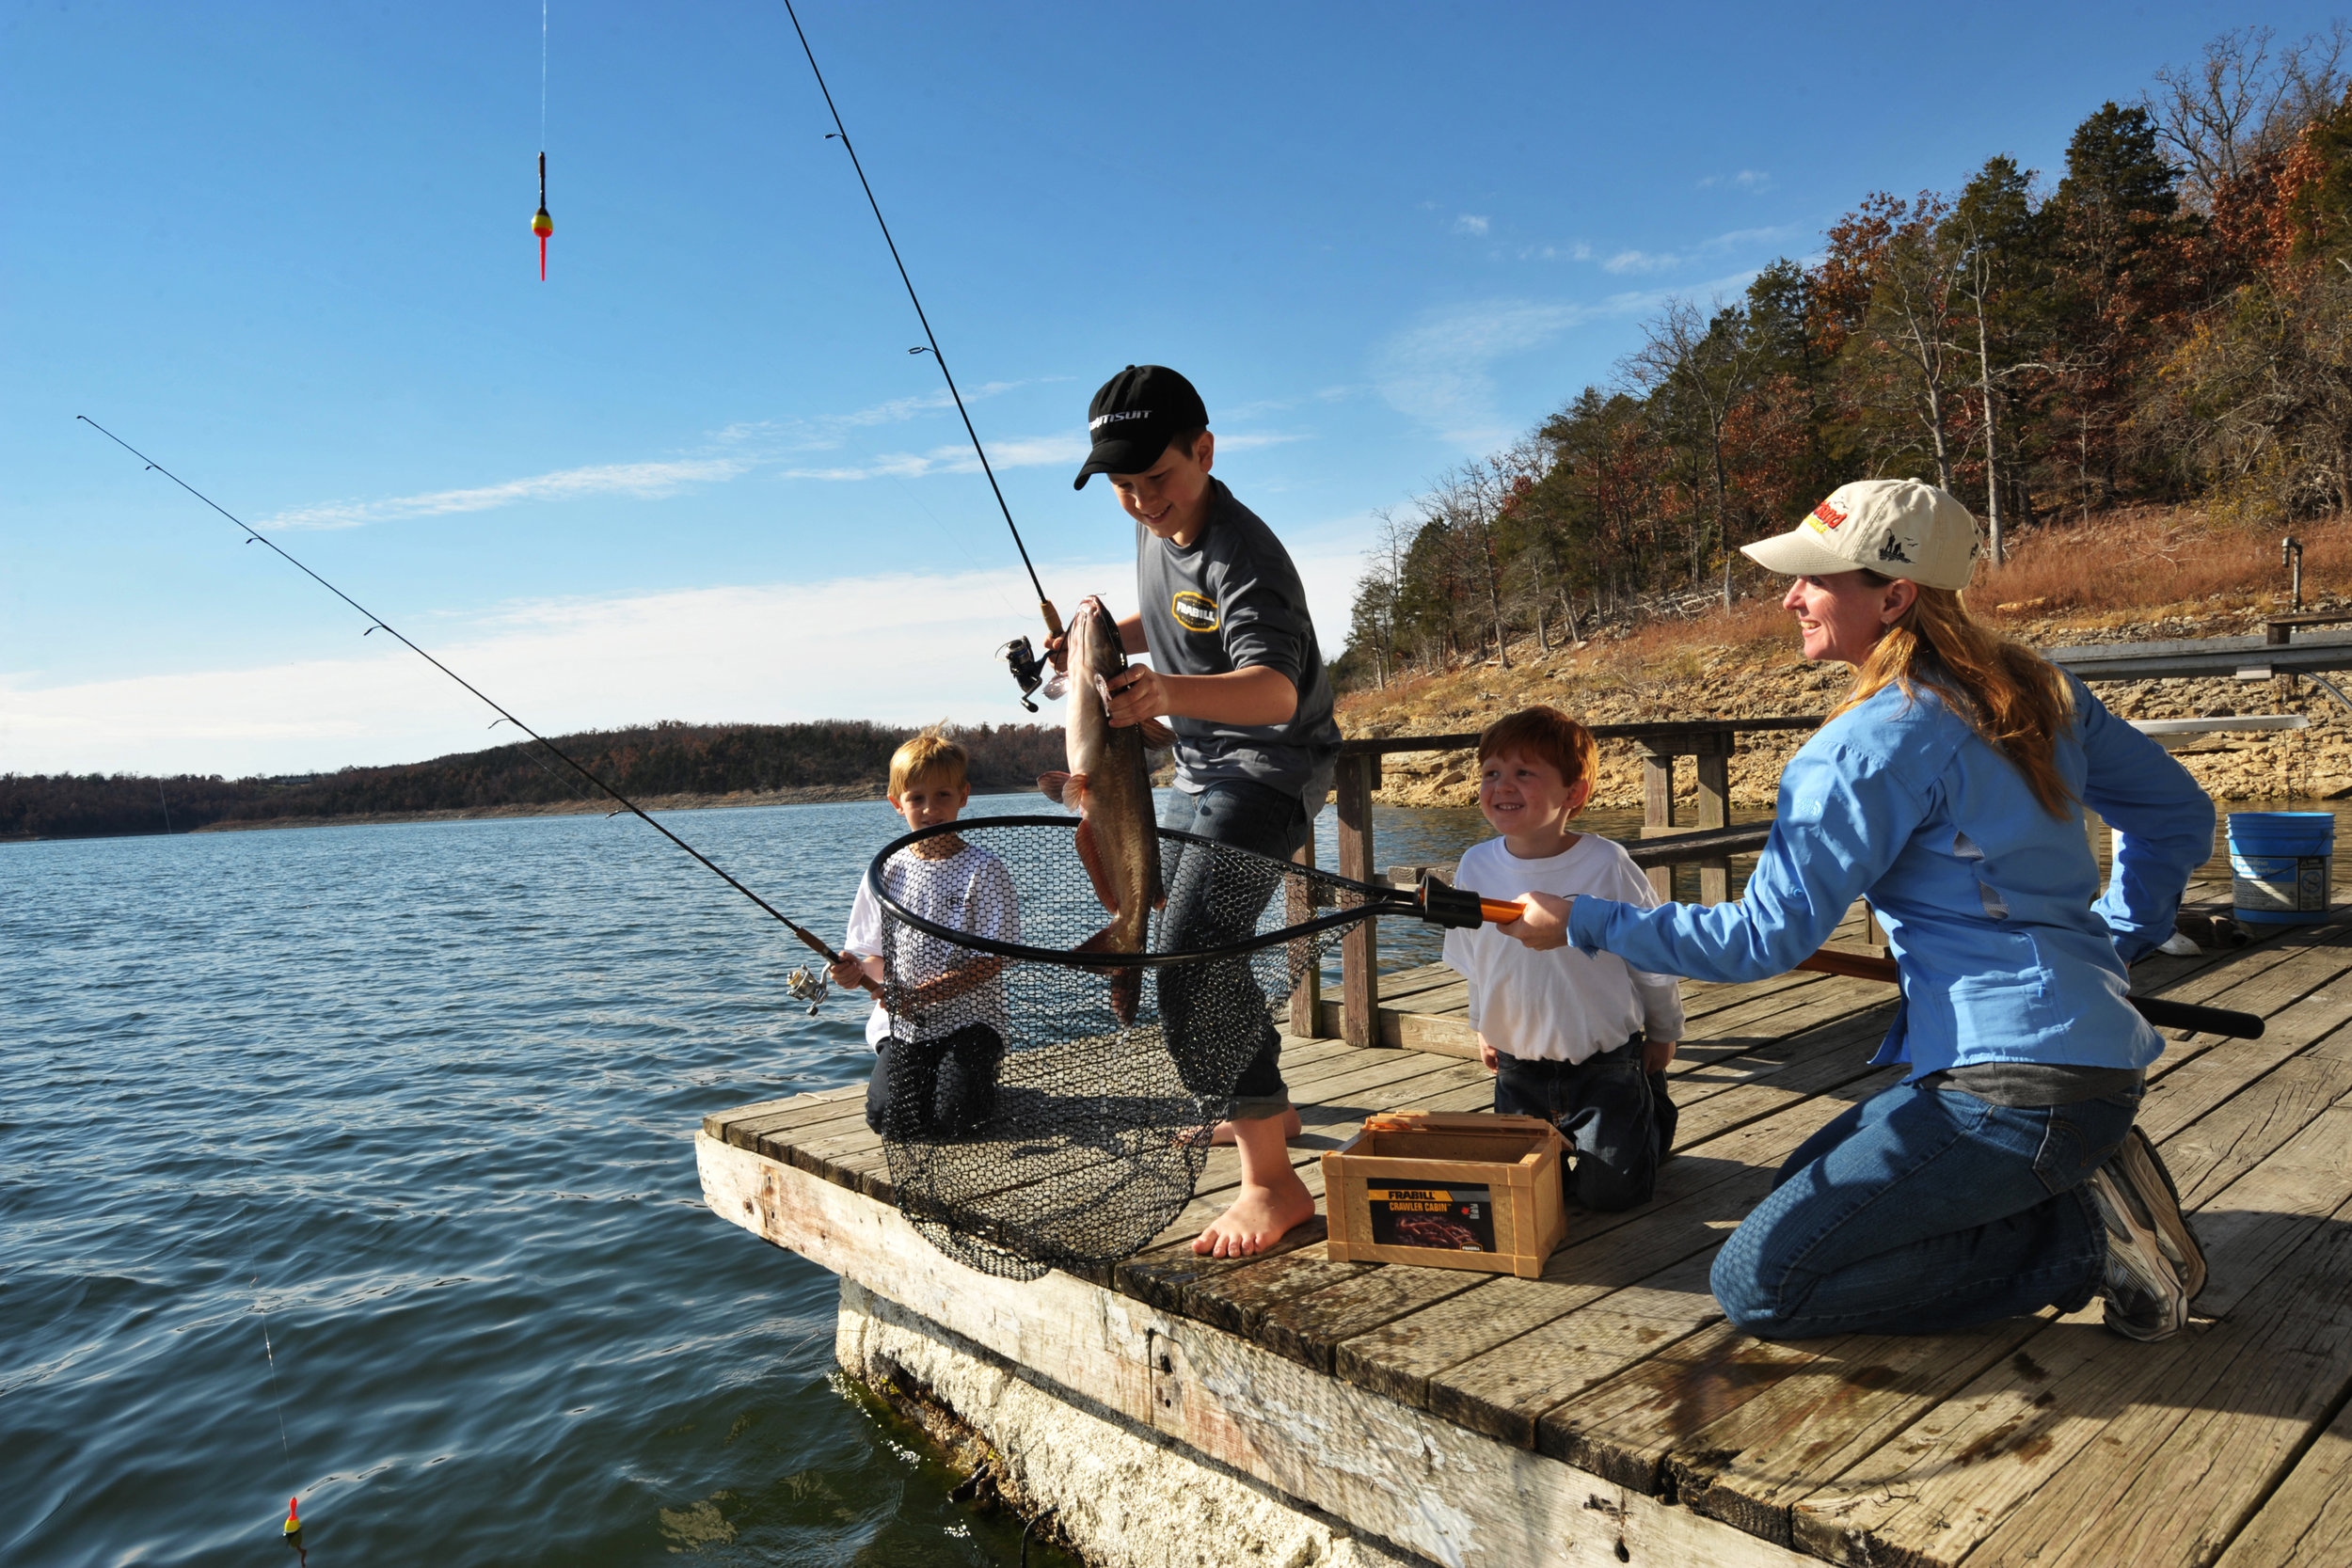 The Community Fishing Program is designed to help families more easily access fishing.